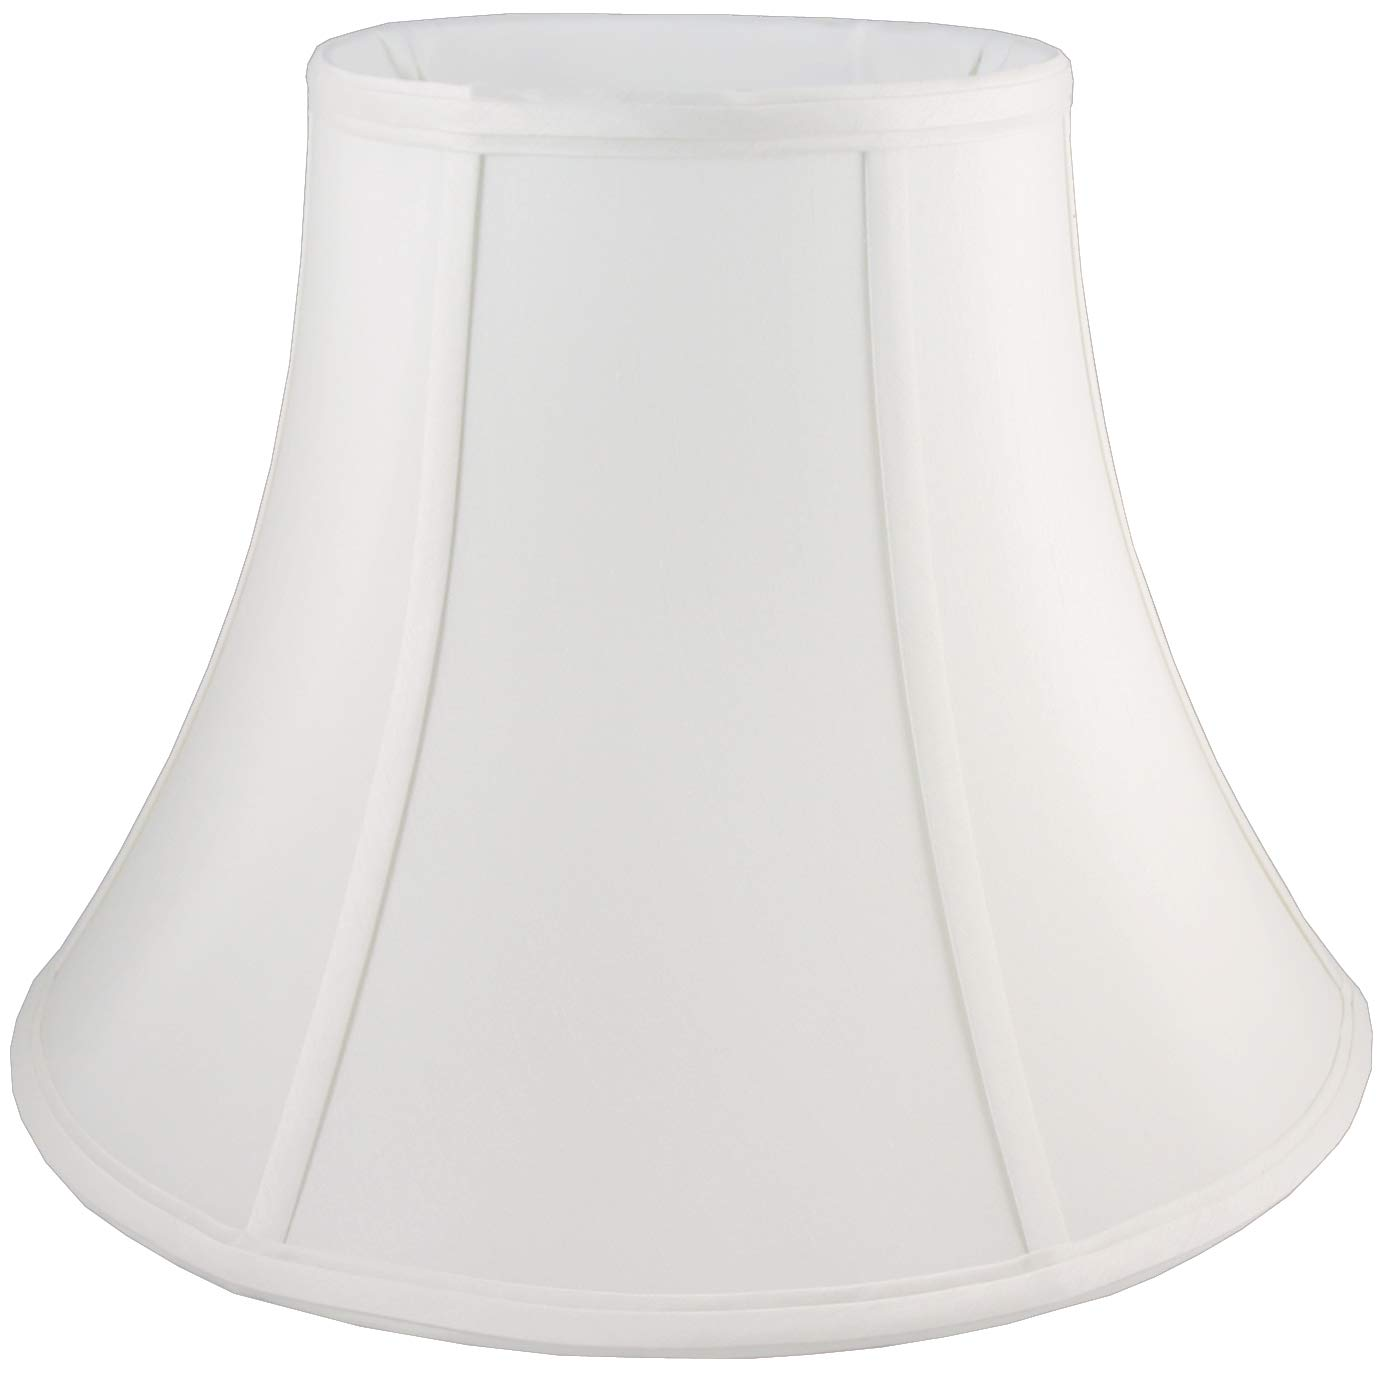 American Pride 9''x 18''x 13.5'' Round Soft Tailored Lampshade, Shantung, Off-white